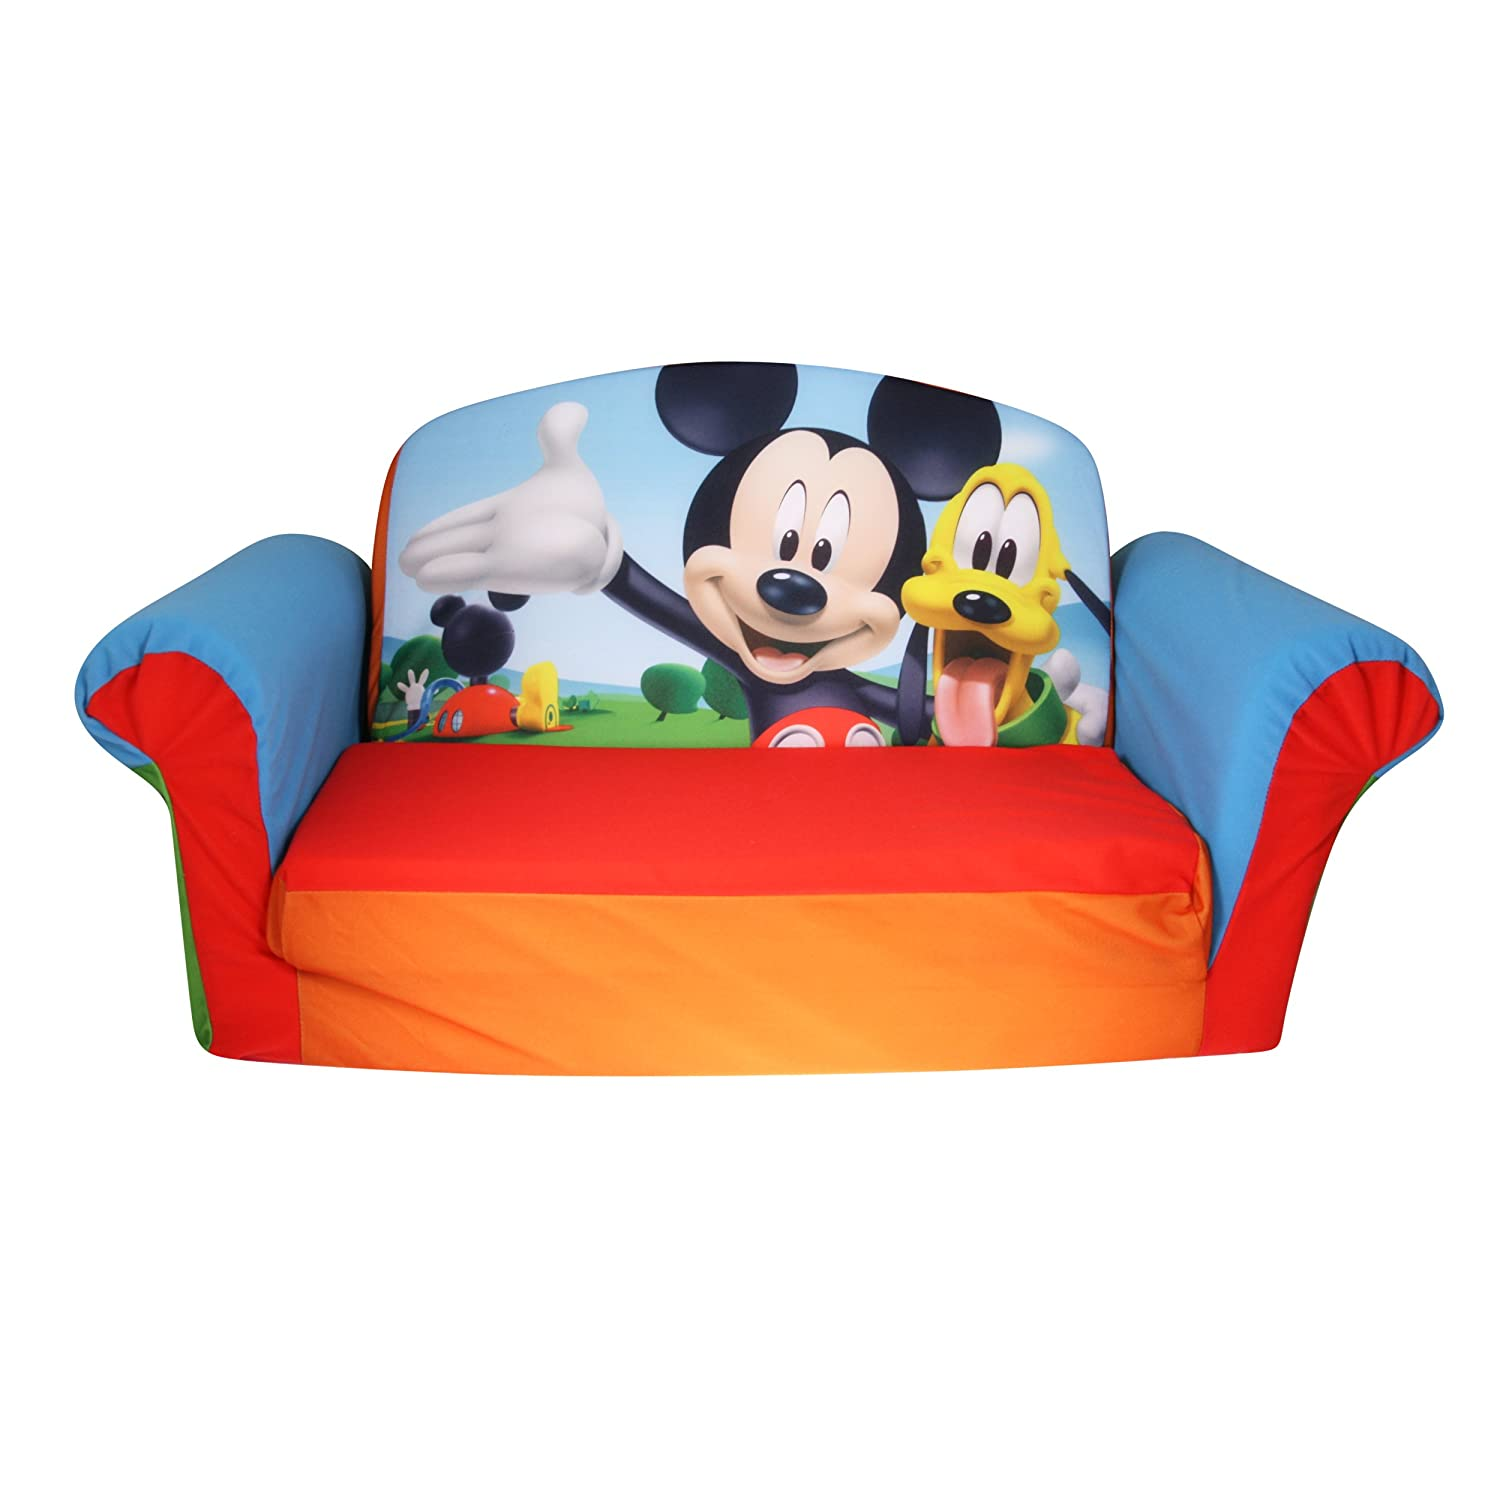 Marshmallow Furniture, Children's 2 in 1 Flip Open Foam Sofa, Disney Mickey Mouse Club House